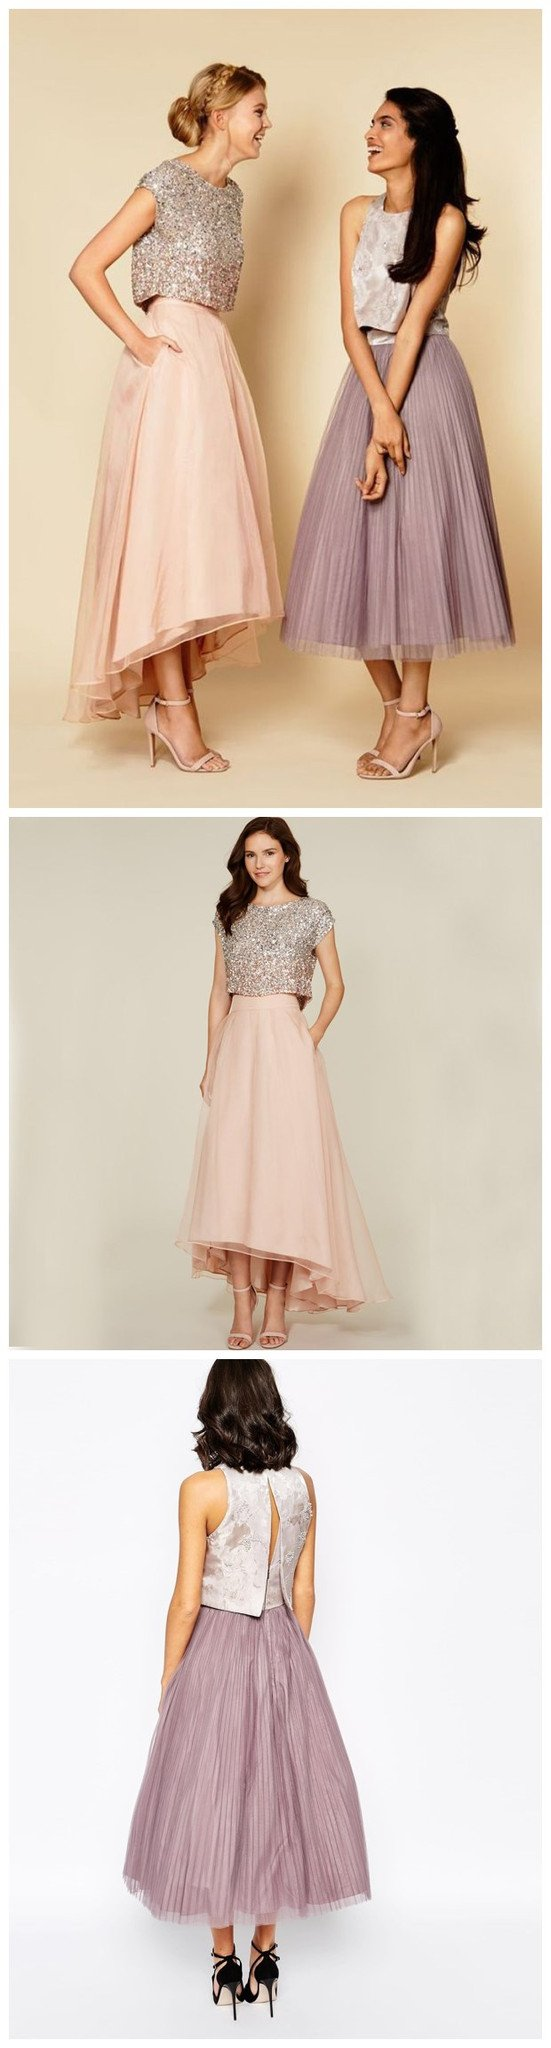 Pretty Two Pieces Cap Sleeve Sequin Top Organza Long Bridesmaid Dresses Cheap Prom Dresses, WG38